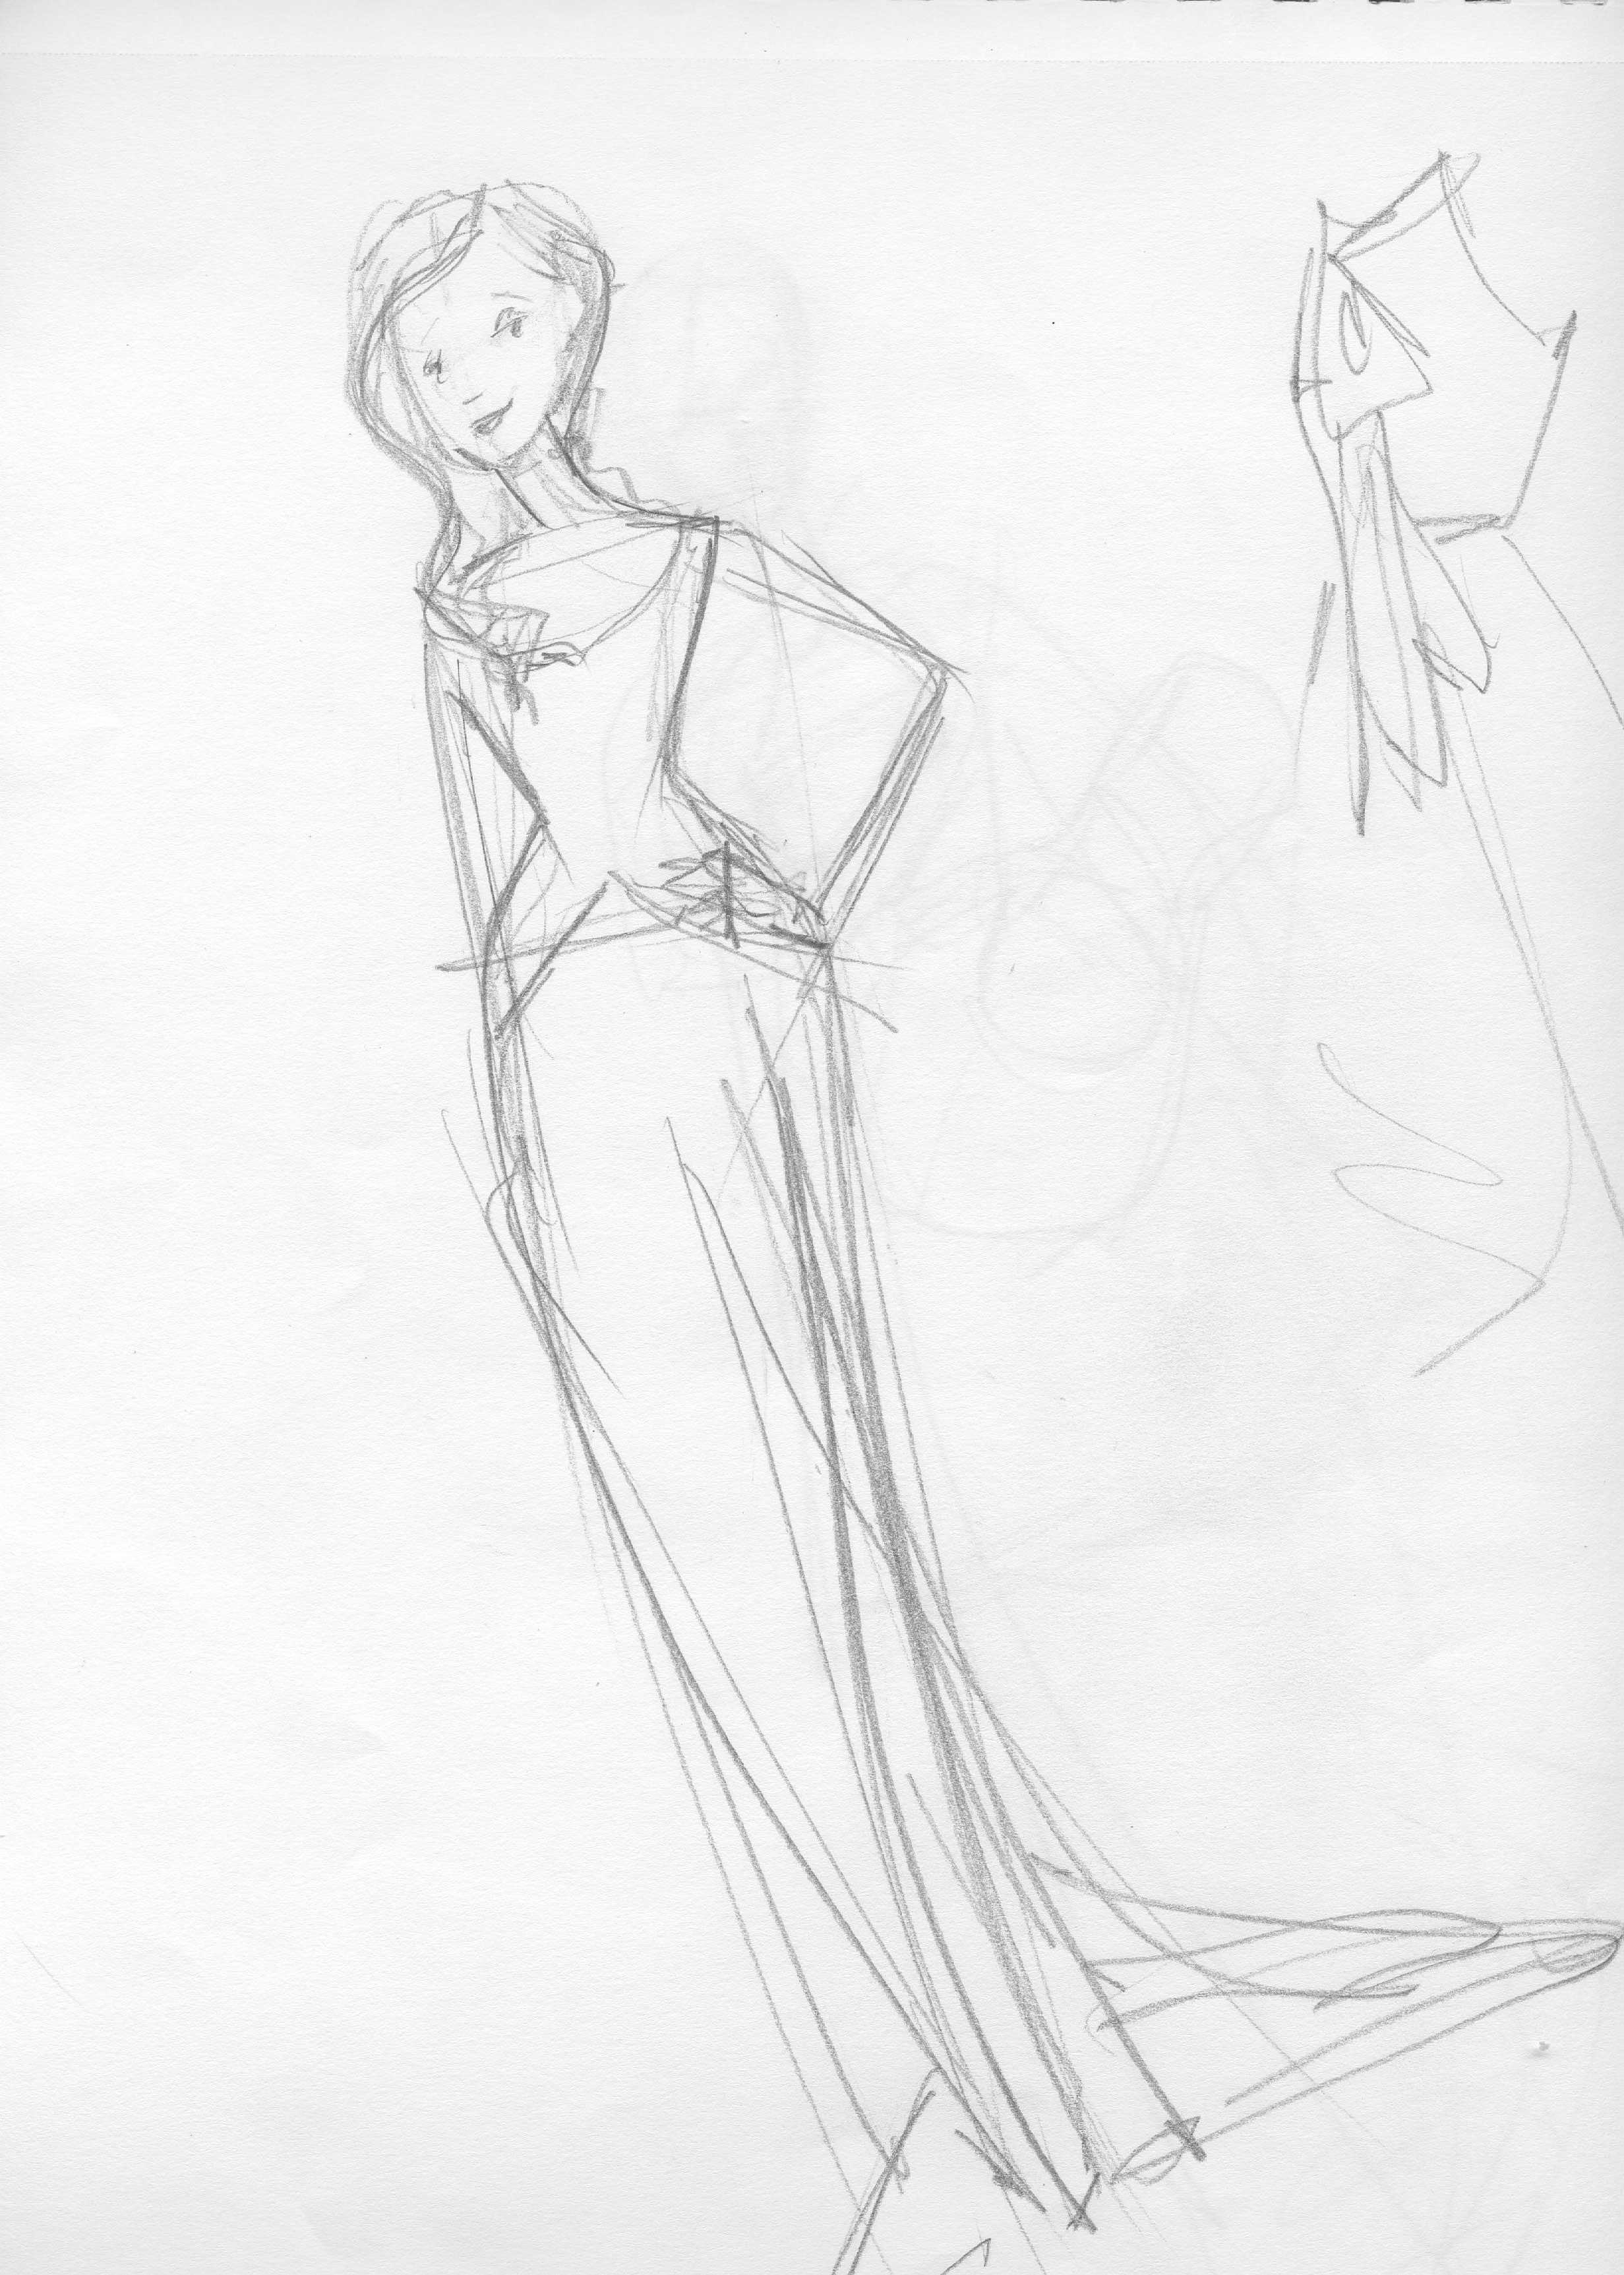 *(SKETCHES)* a walk down memory lane - image 28 - student project